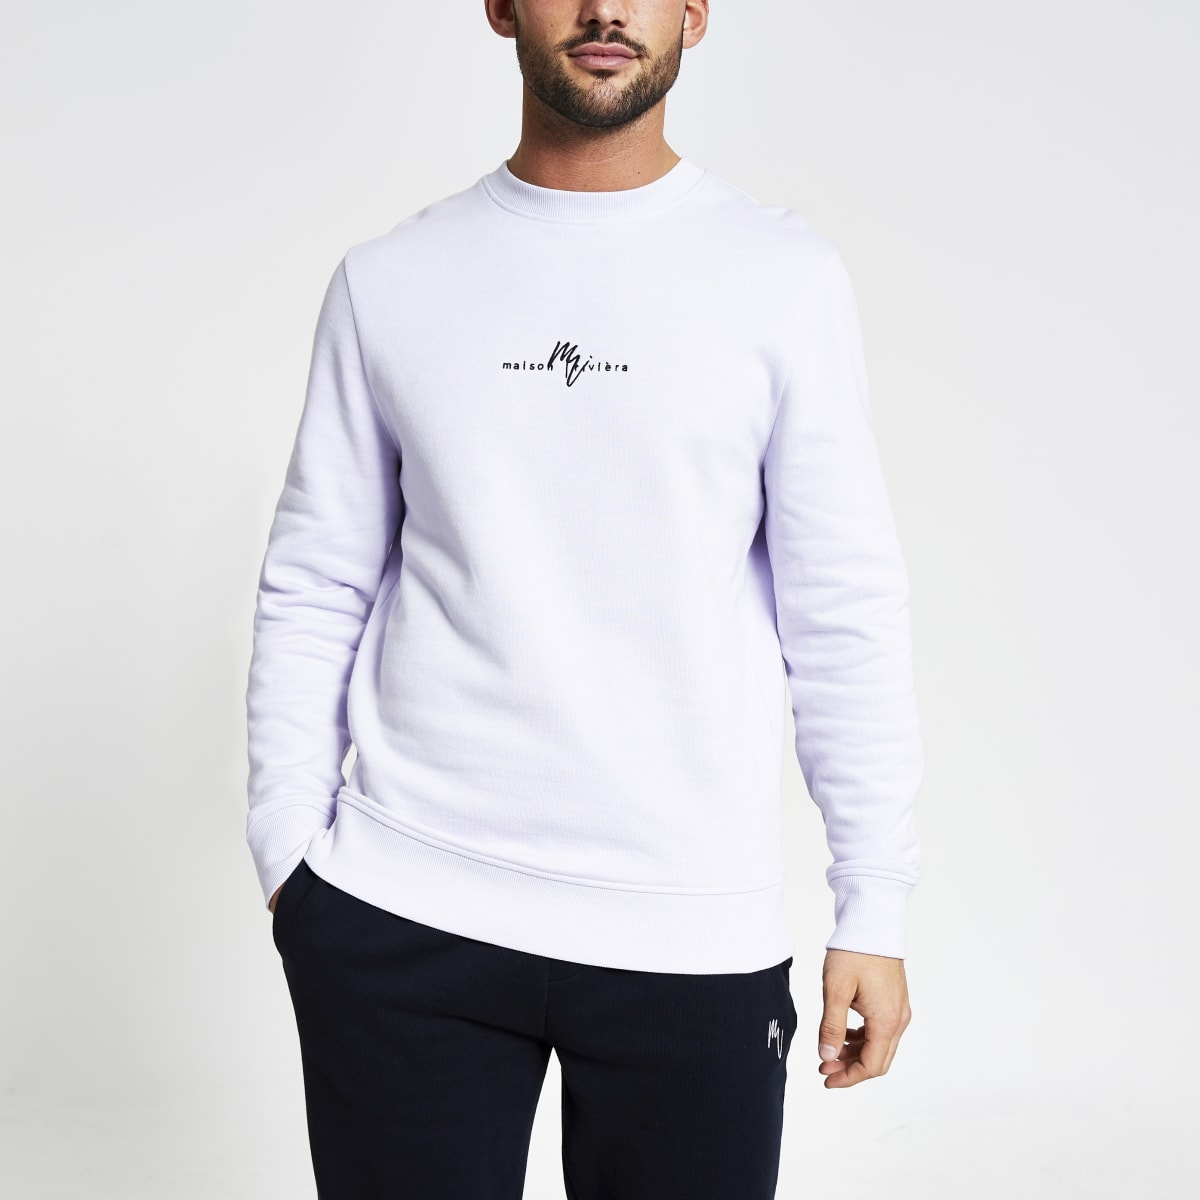 Maison Riviera purple slim fit sweatshirt